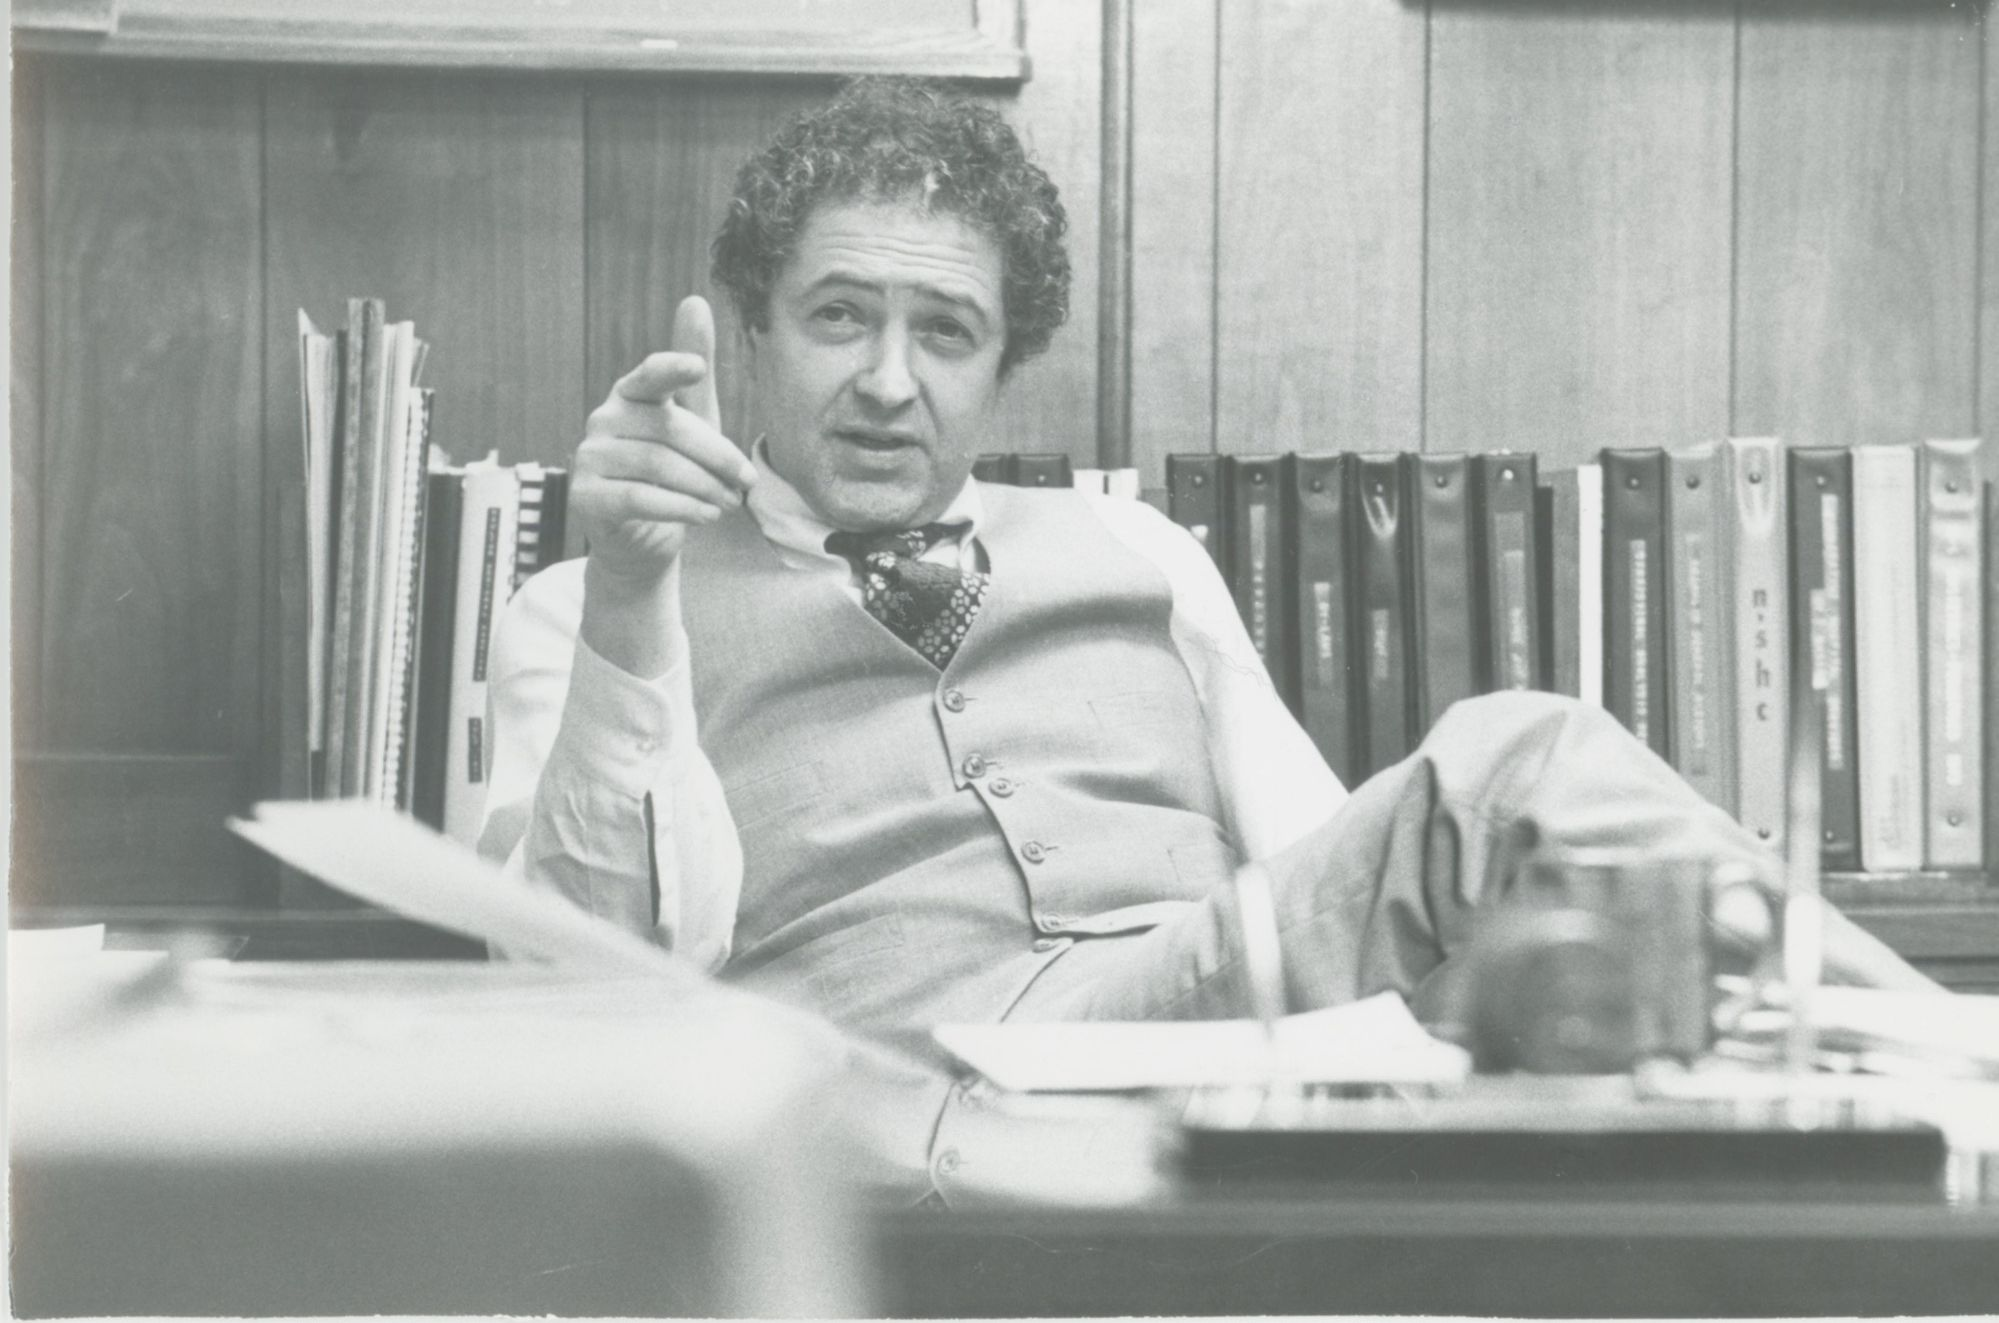 Albert Dicker was the executive director from 1964-99. During his 35 years leading Franklin Hospital, he oversaw several expansions of the building, the use of more medical technology and the establishment of a relationship with the North Shore-LIJ health system.